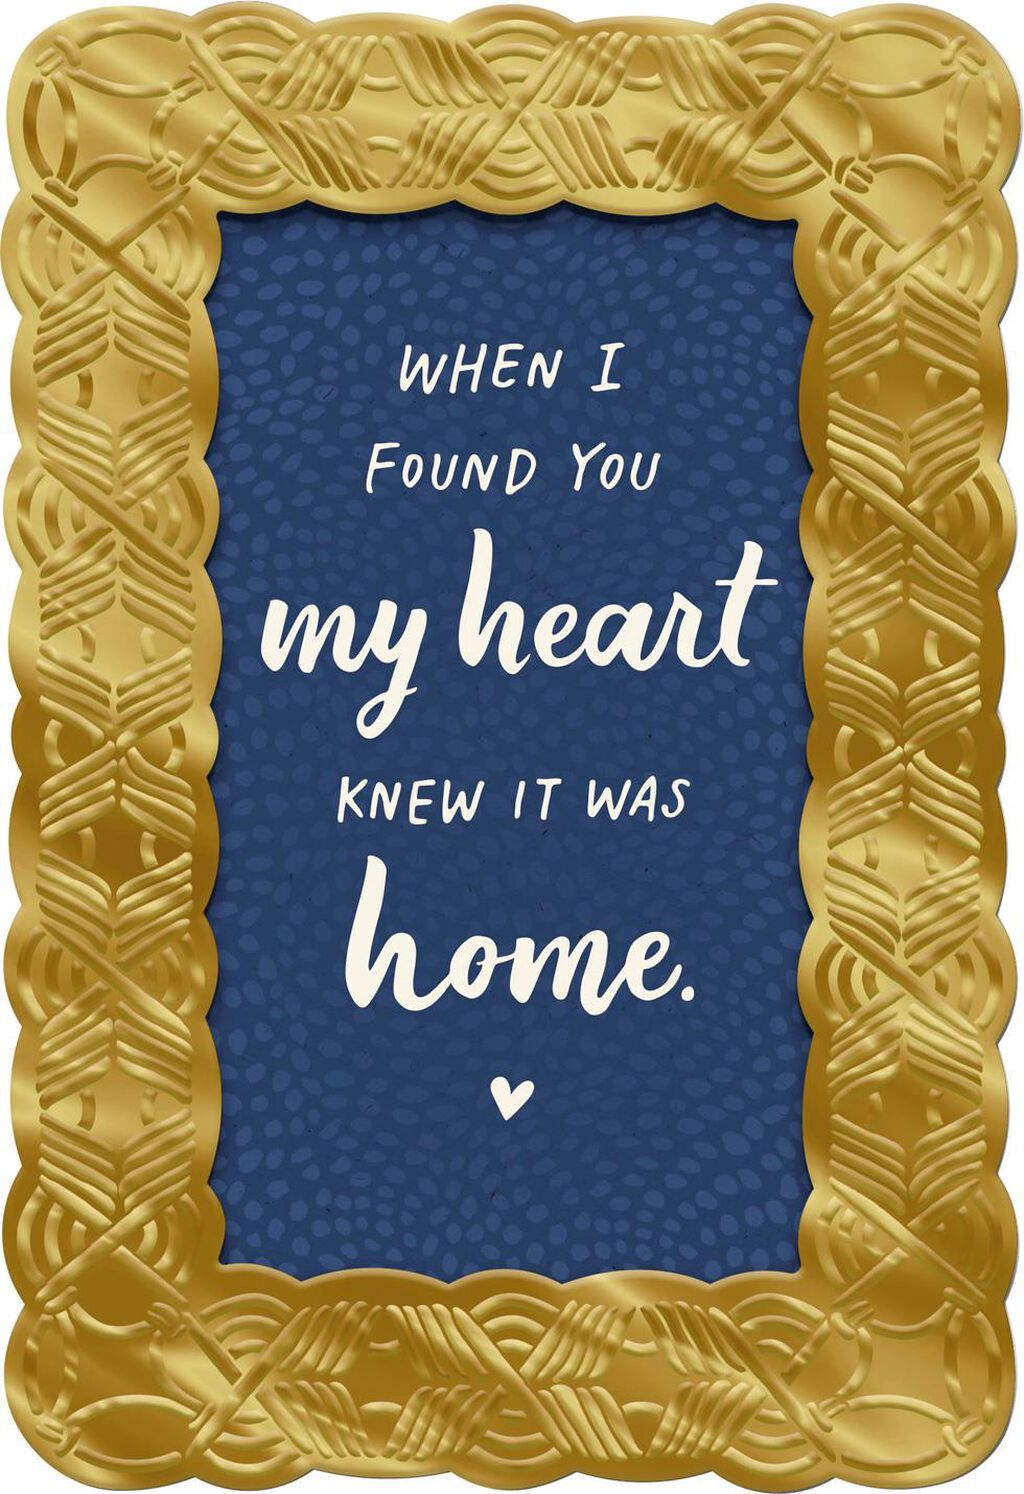 My Heart Is Home Fathers Day Card For Husband Greeting Cards